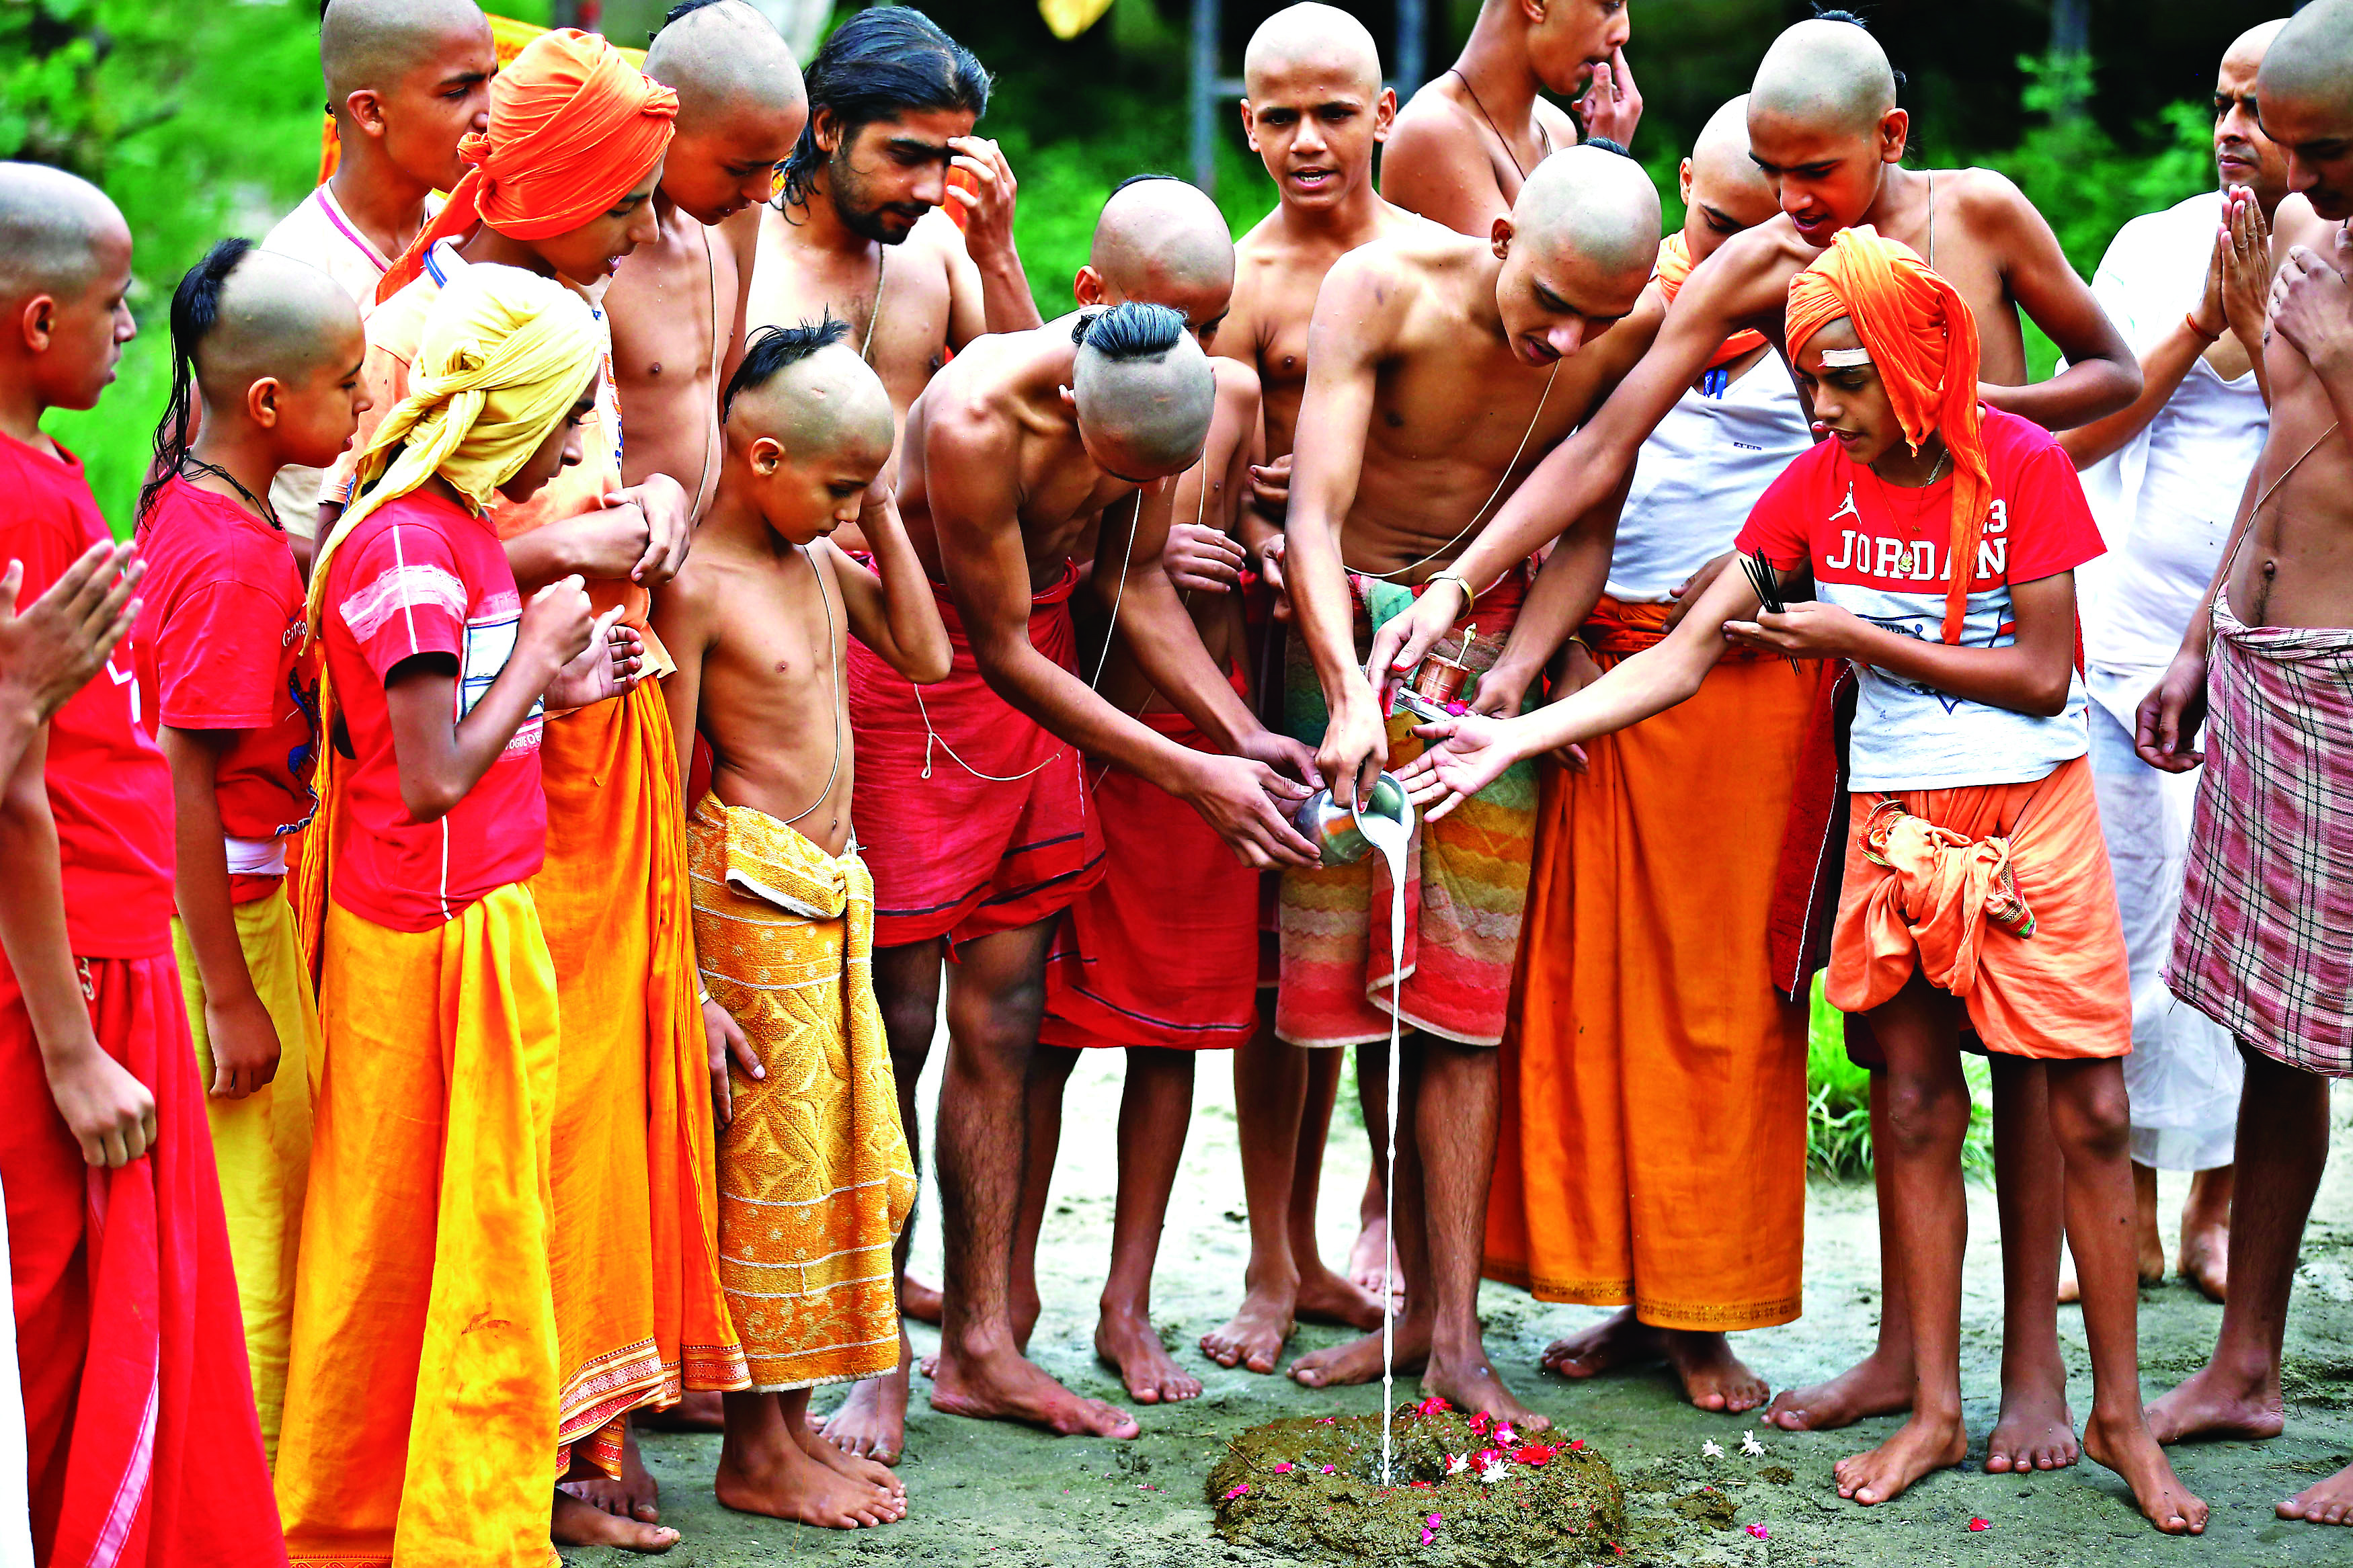 Nepali young Hindu priests perform rituals during Janai Purnima or Sacred Thread festival inside Pashupathinath Temple in Kathmandu, Nepal on Sunday, August 26, 2018. It is believed that tying the sacred thread rids skin diseases.